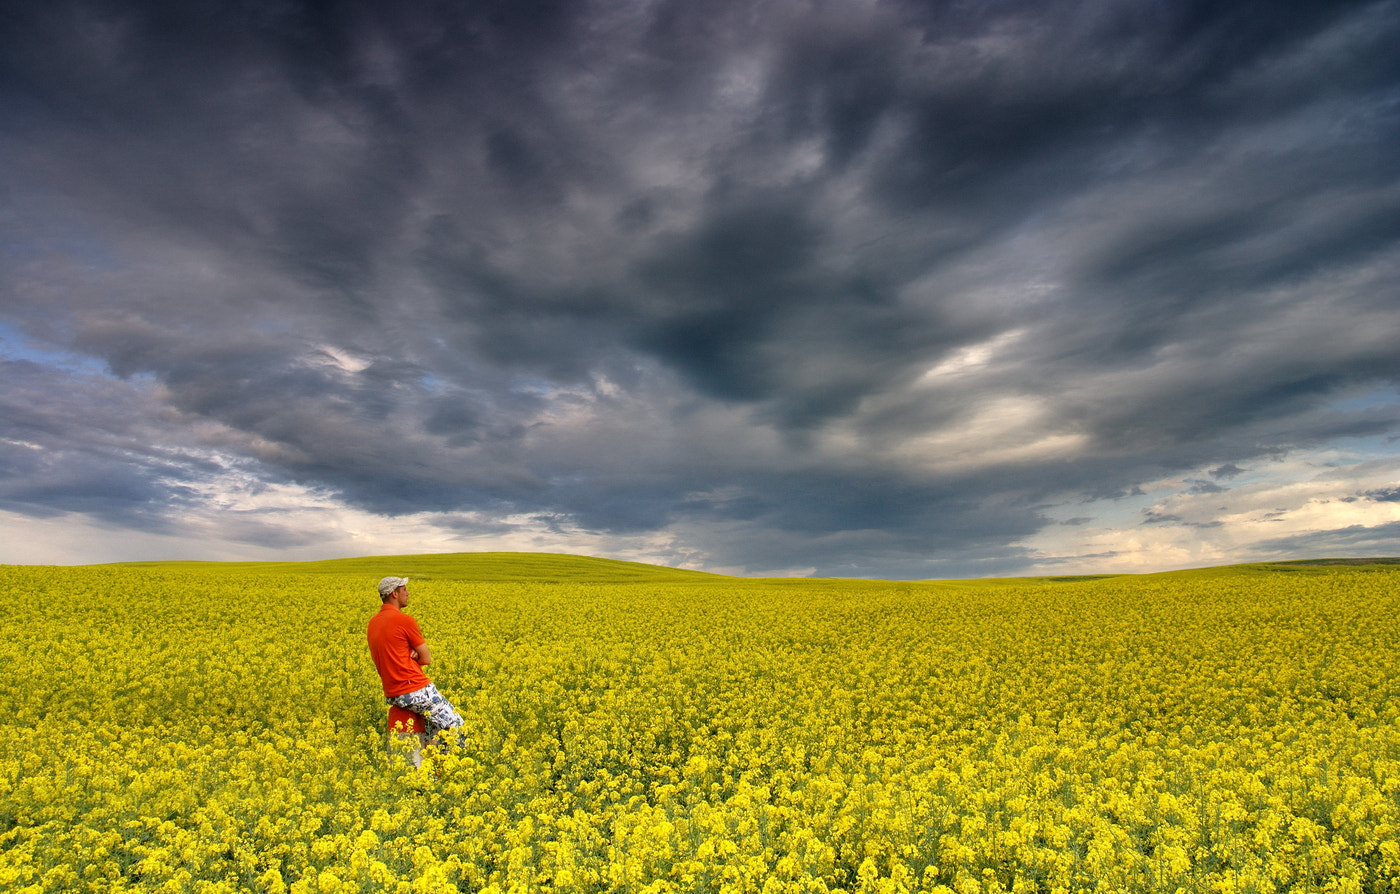 Photograph Waiting for Rain by Lukas Zugaj on 500px